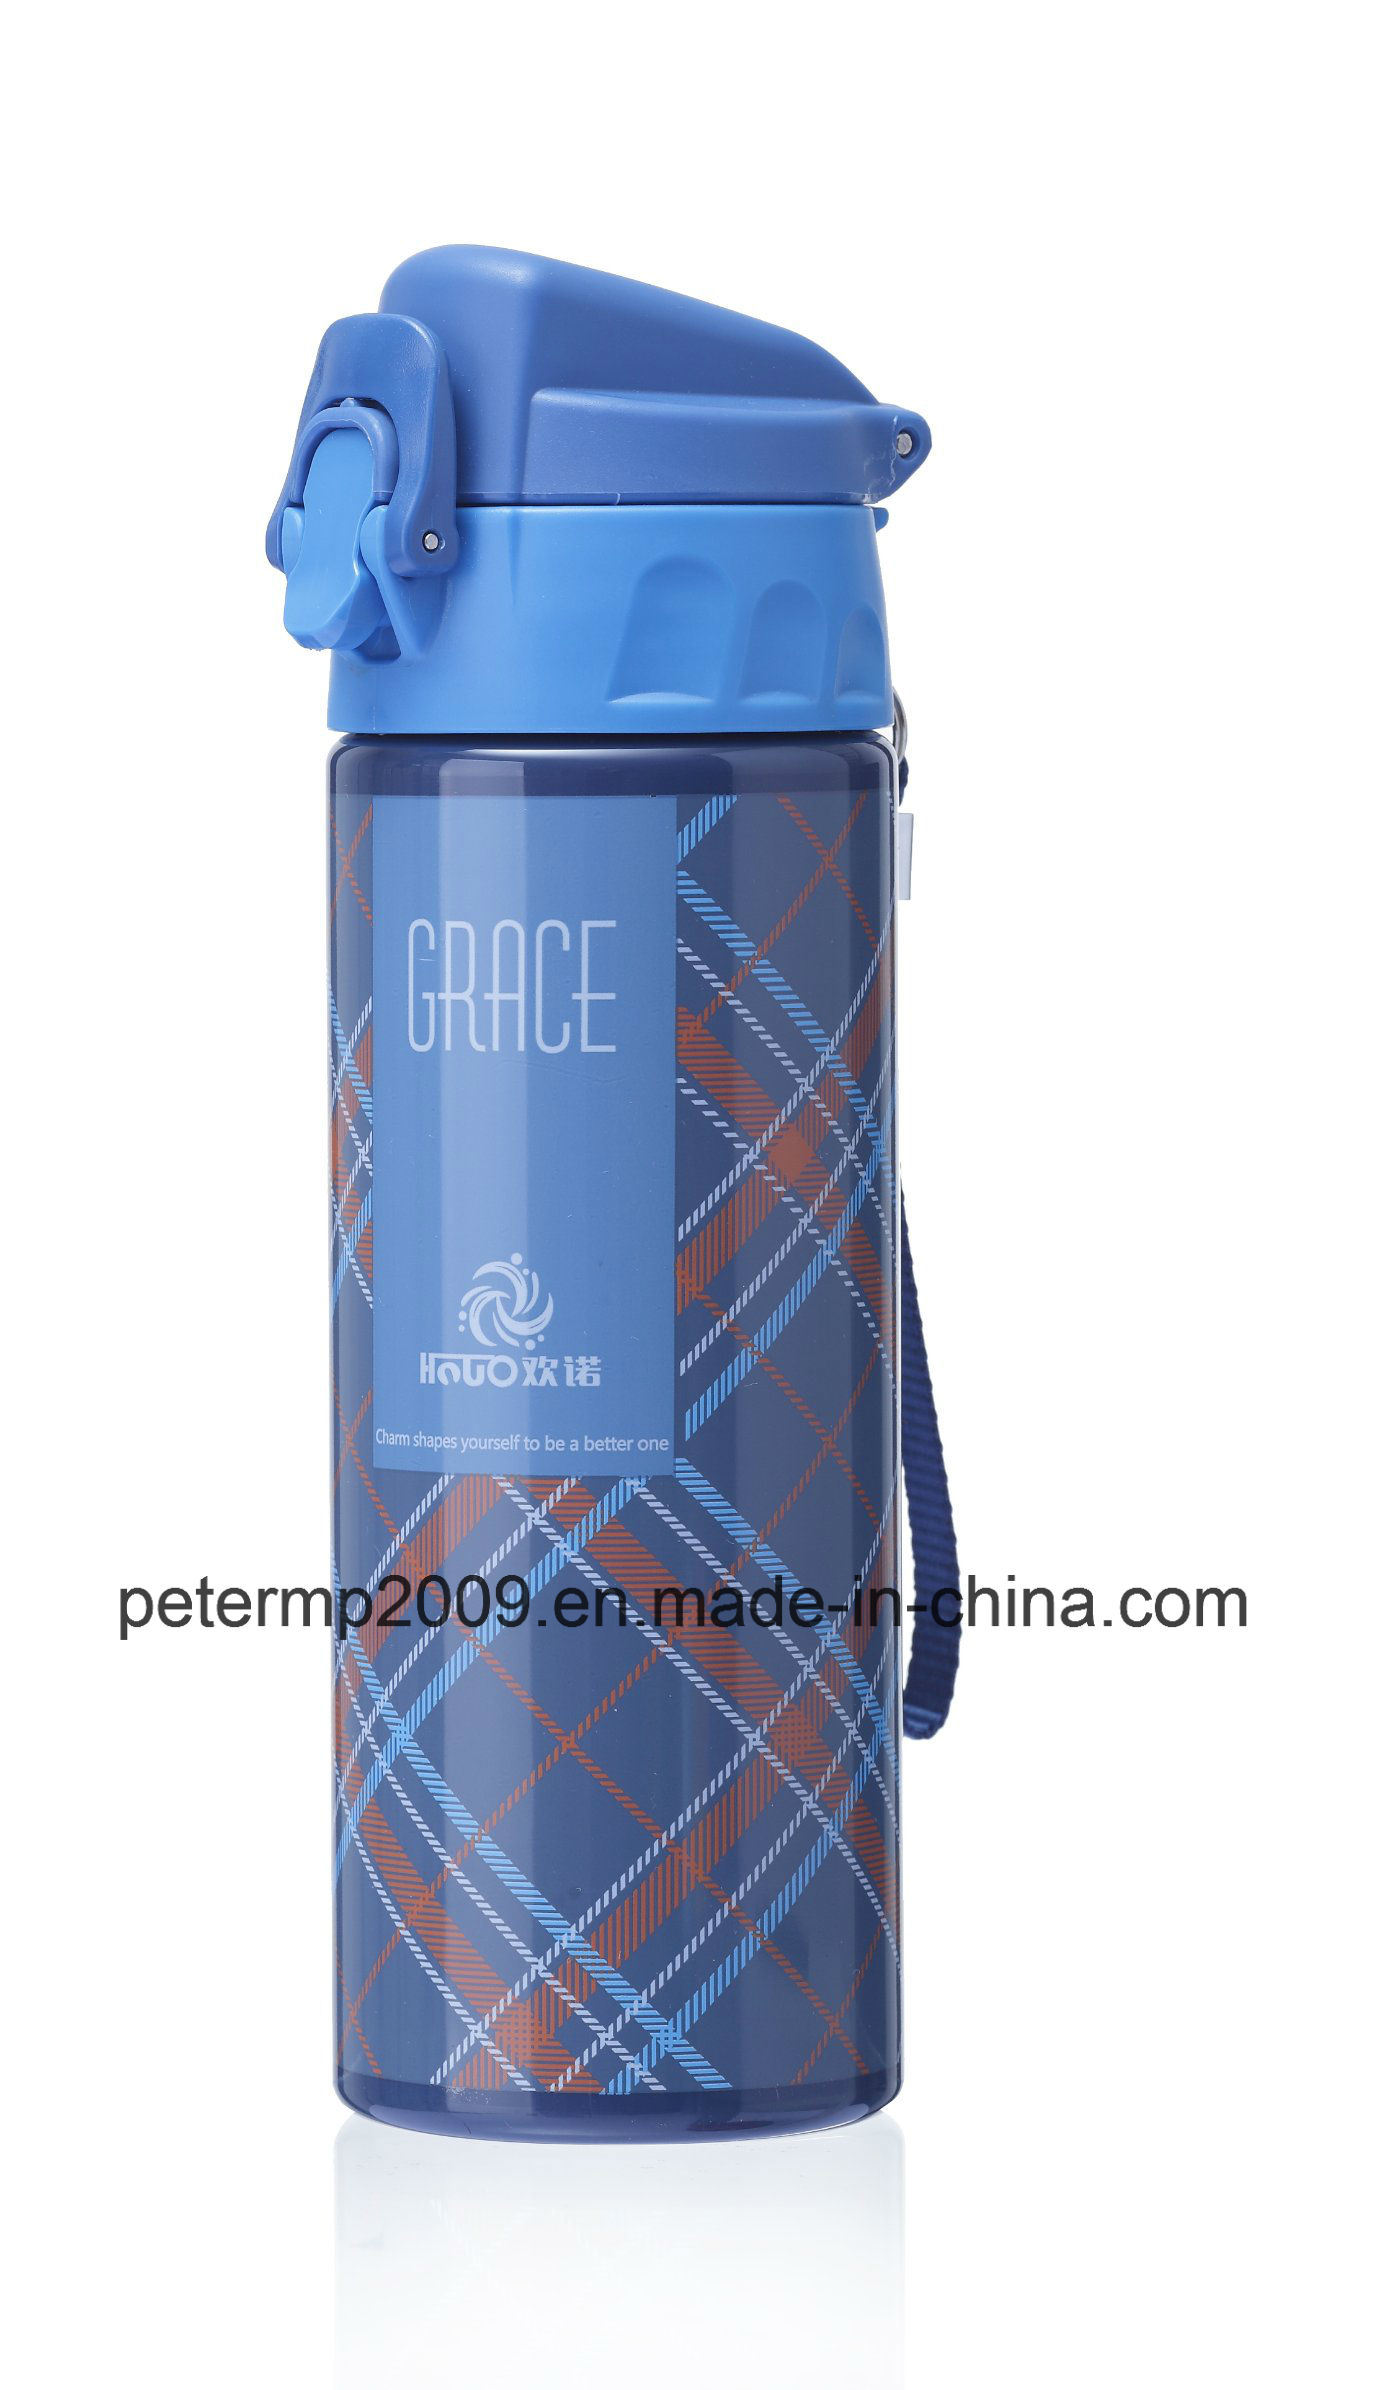 600ml Plastic Water Bottle with Storage Compartment with High Strength and Good Seal